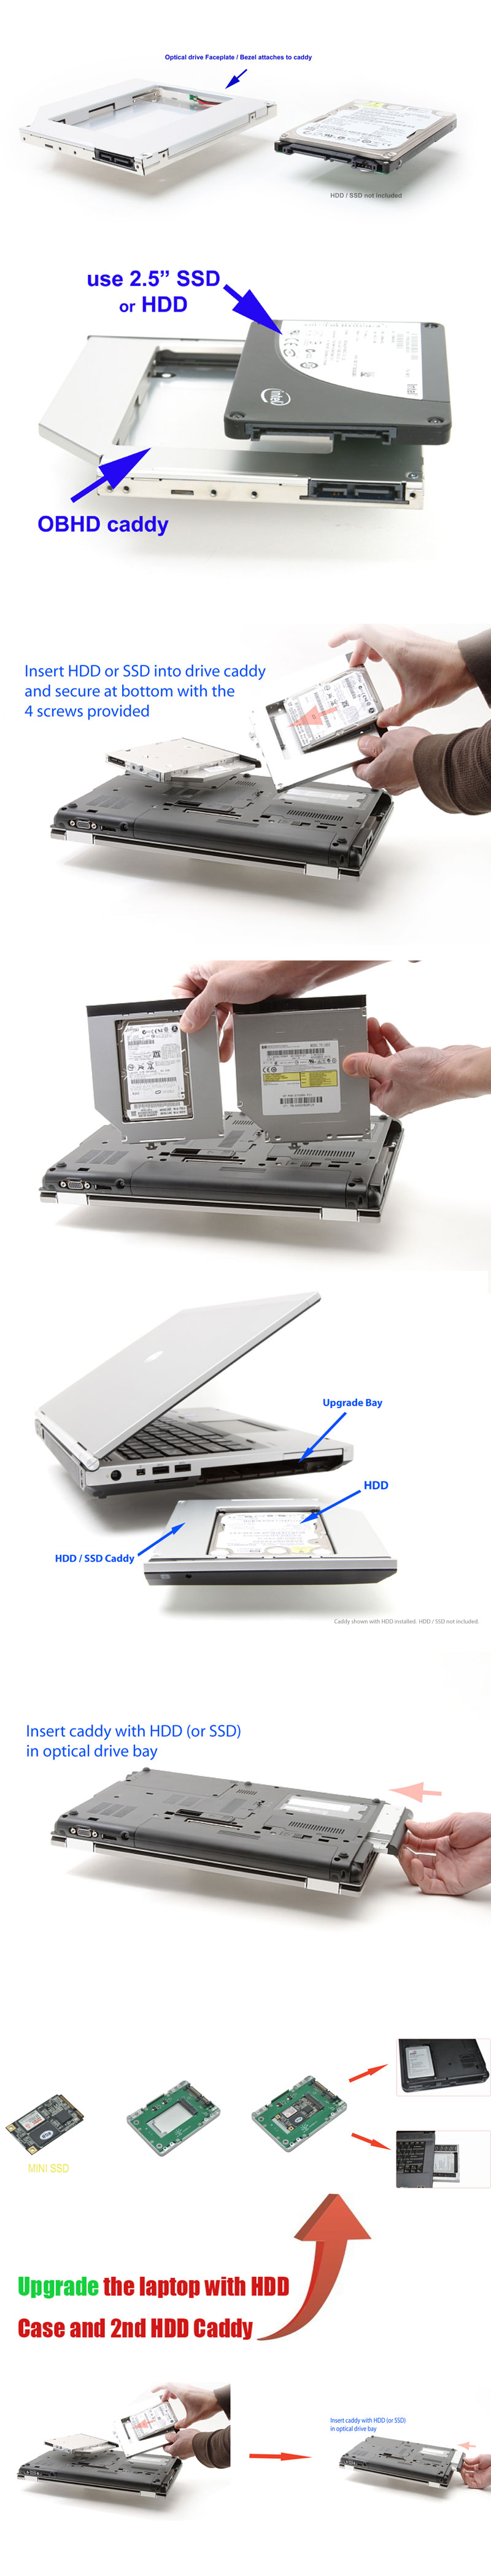 install step of hdd caddy